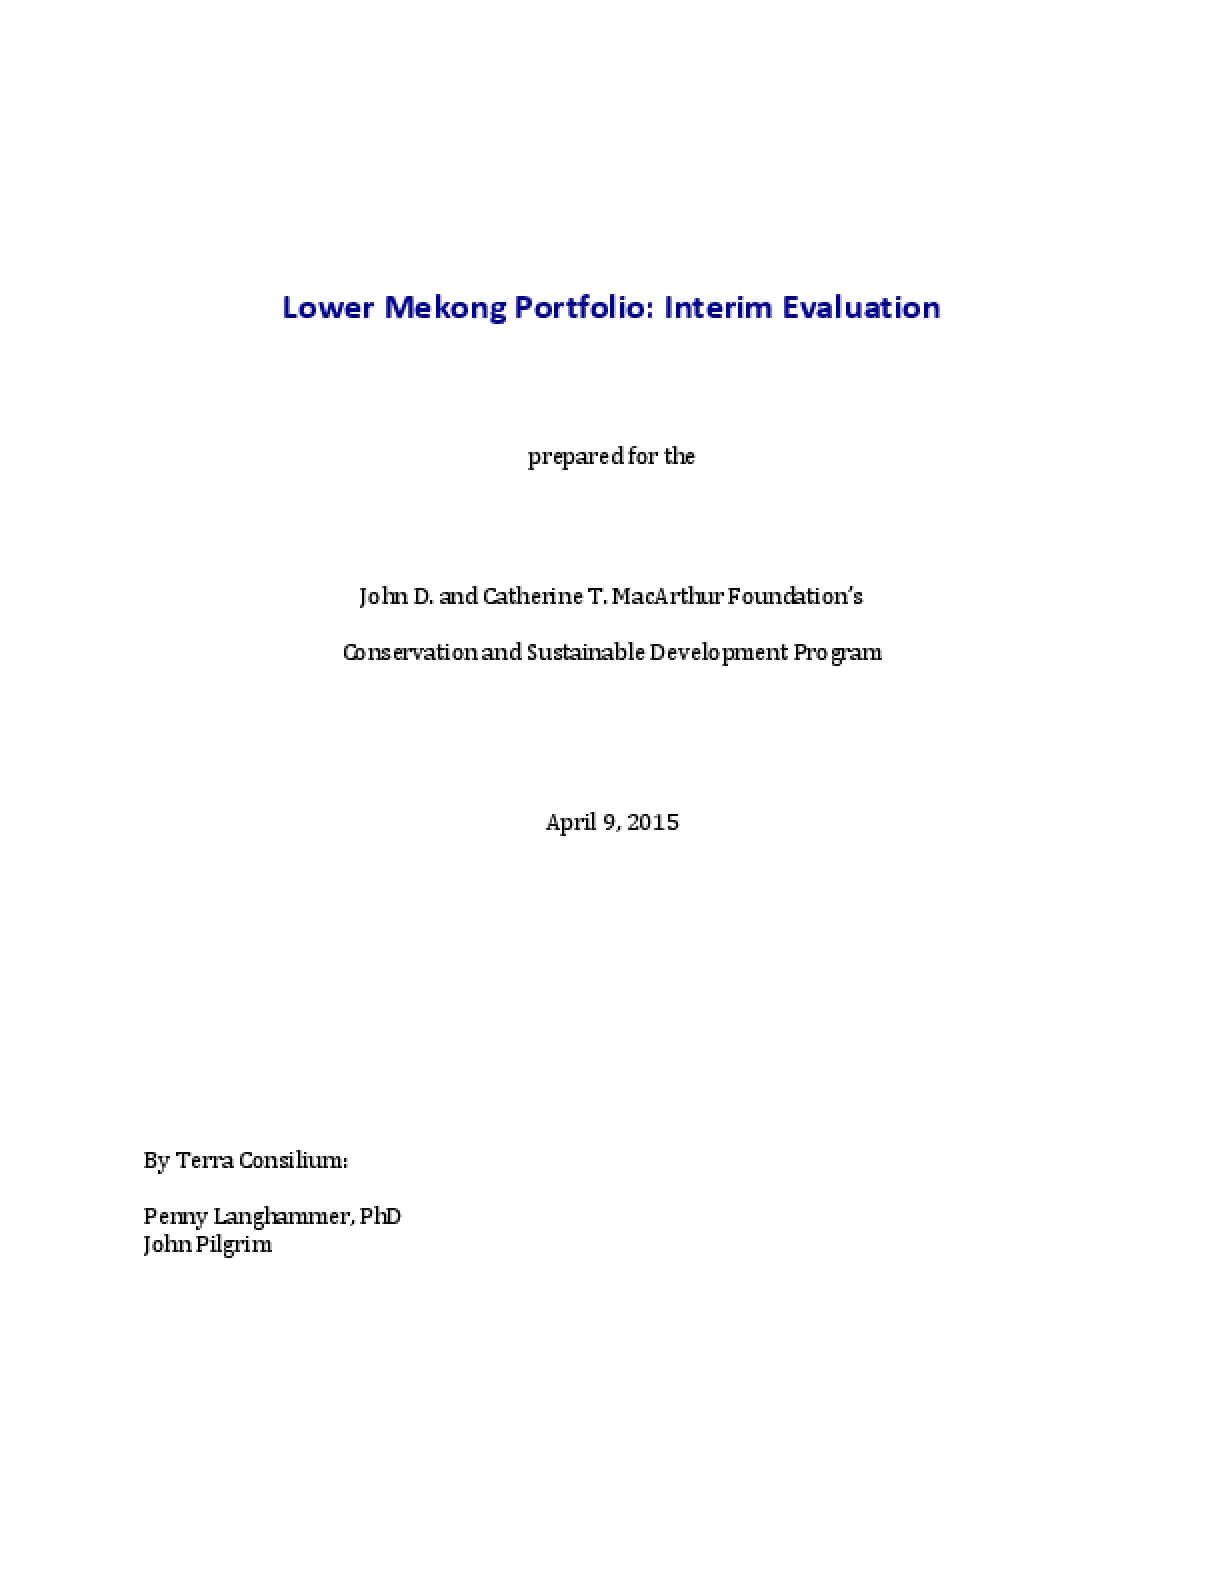 Lower Mekong Portfolio: Interim Evaluation